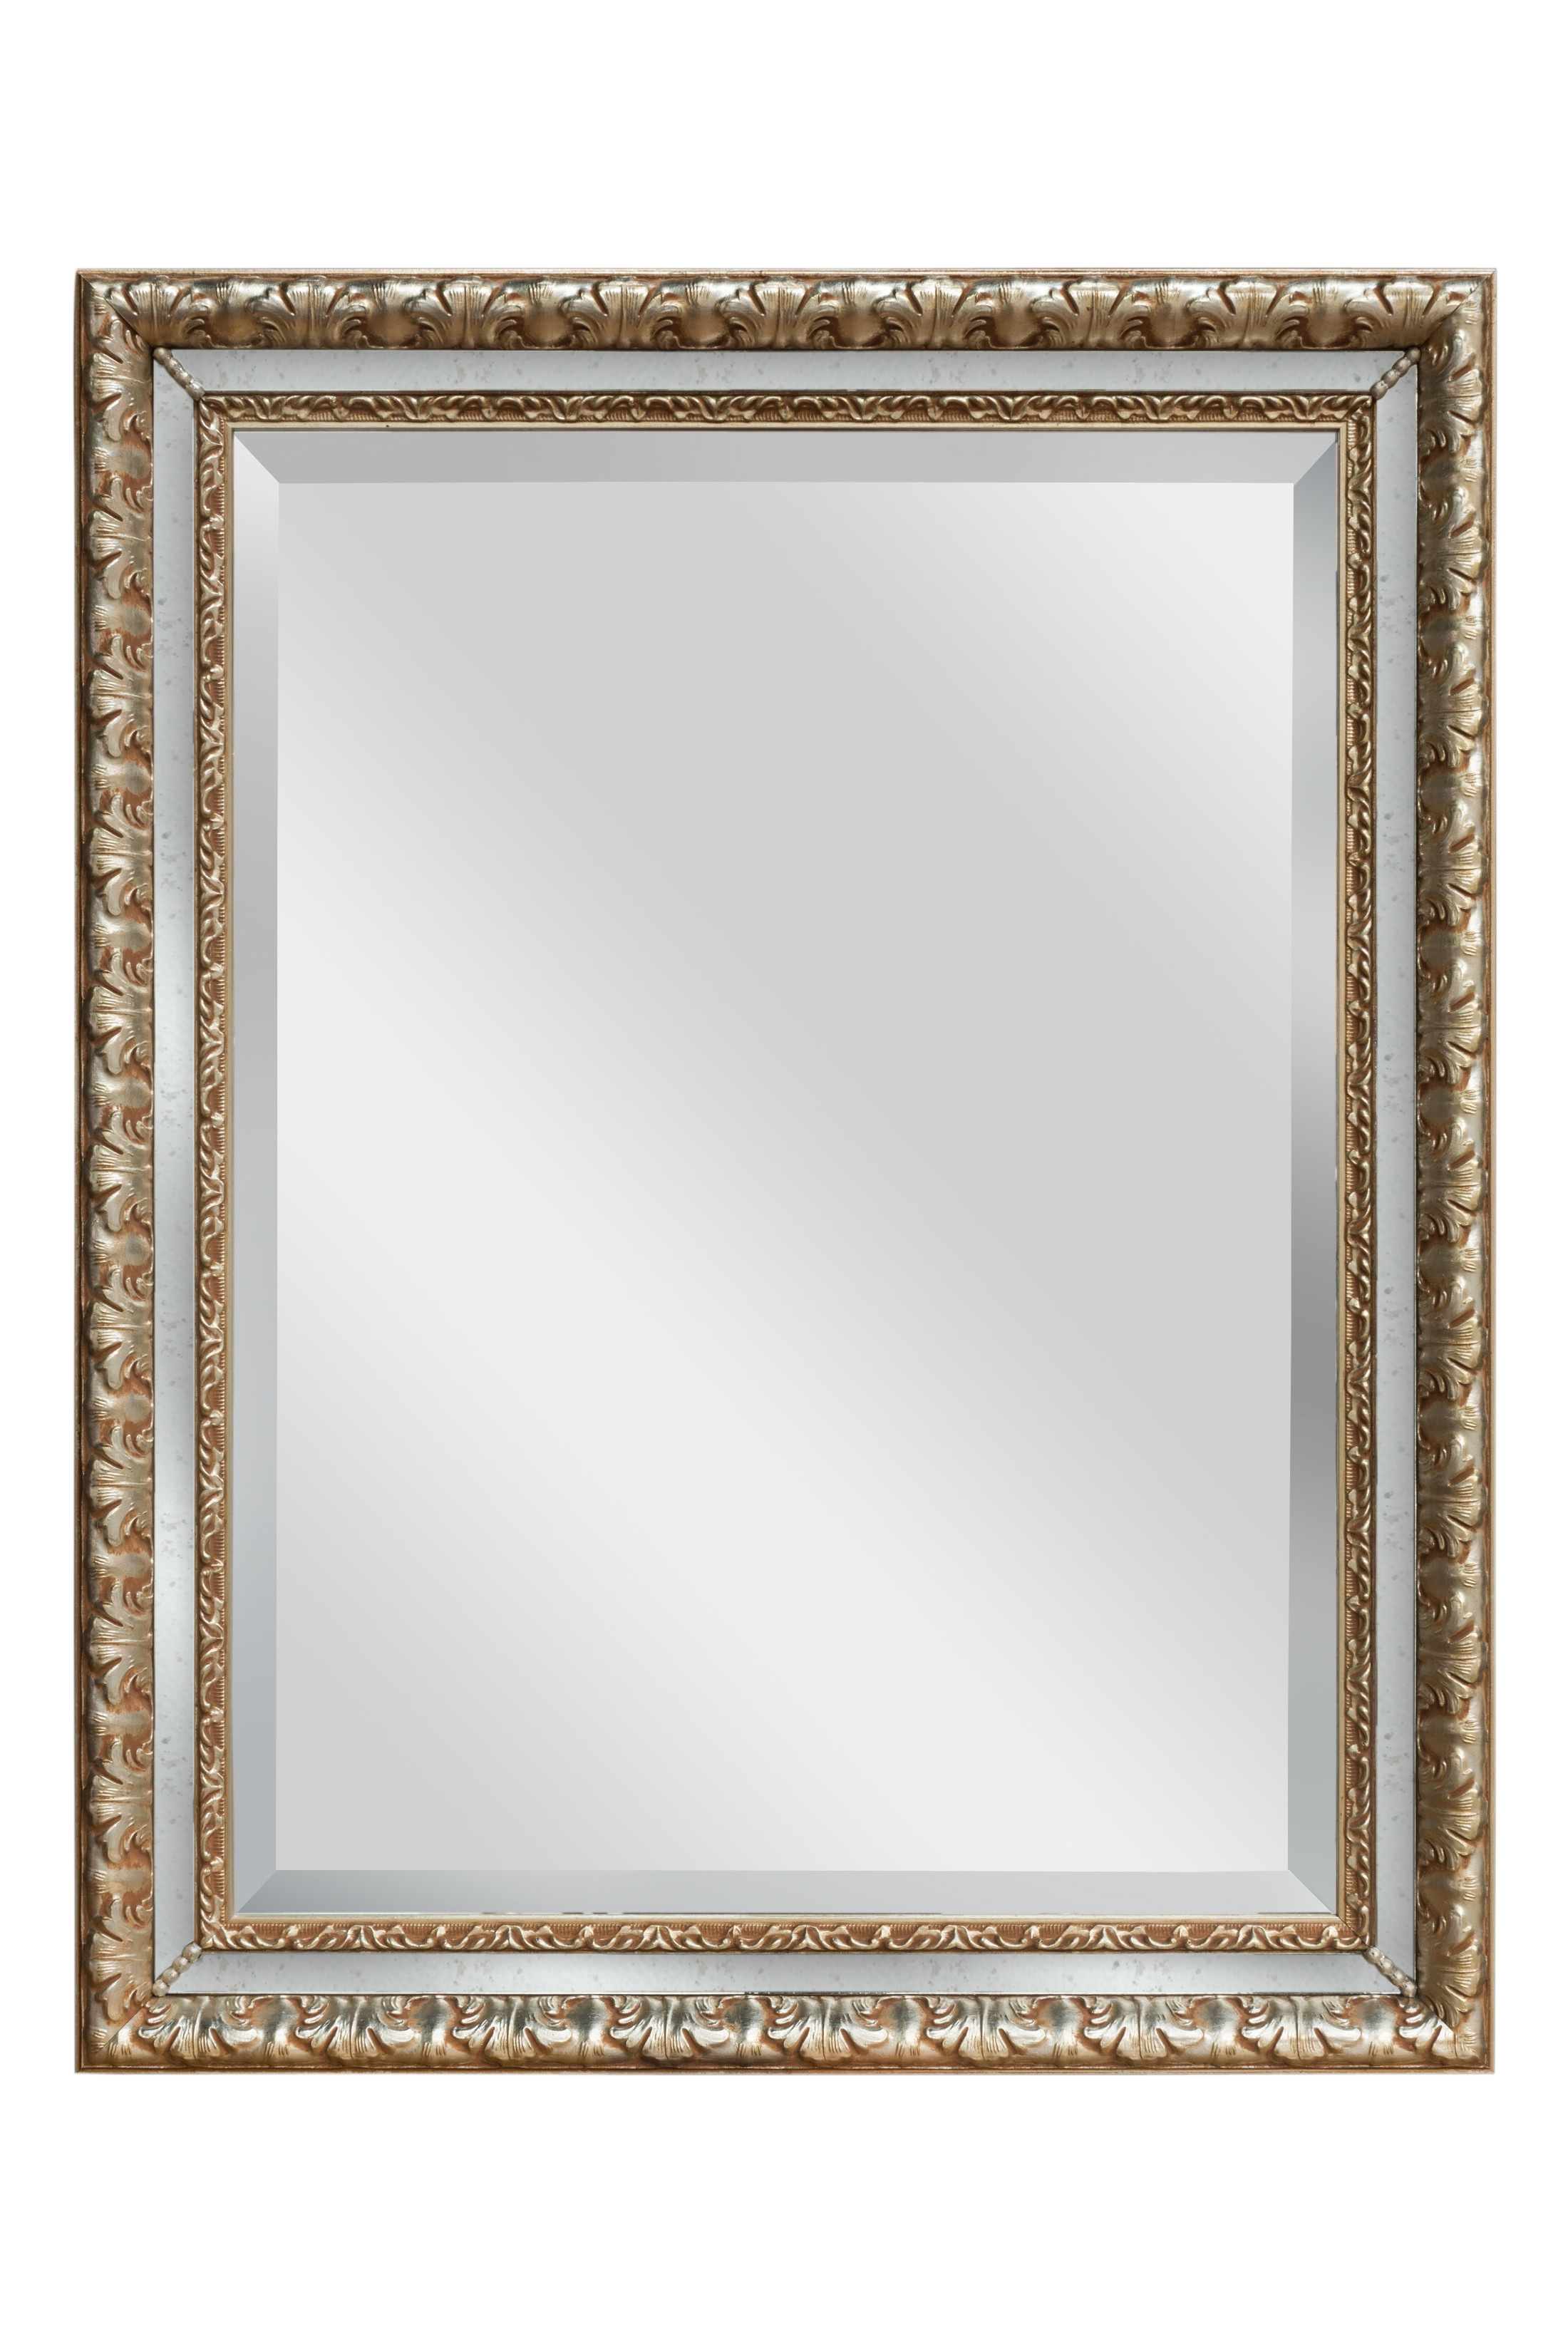 Silver Laurel Mirror Bedroom Mirrors For Sale Panfili Mirrors With Regard To Mirrors For Sale (Image 13 of 15)